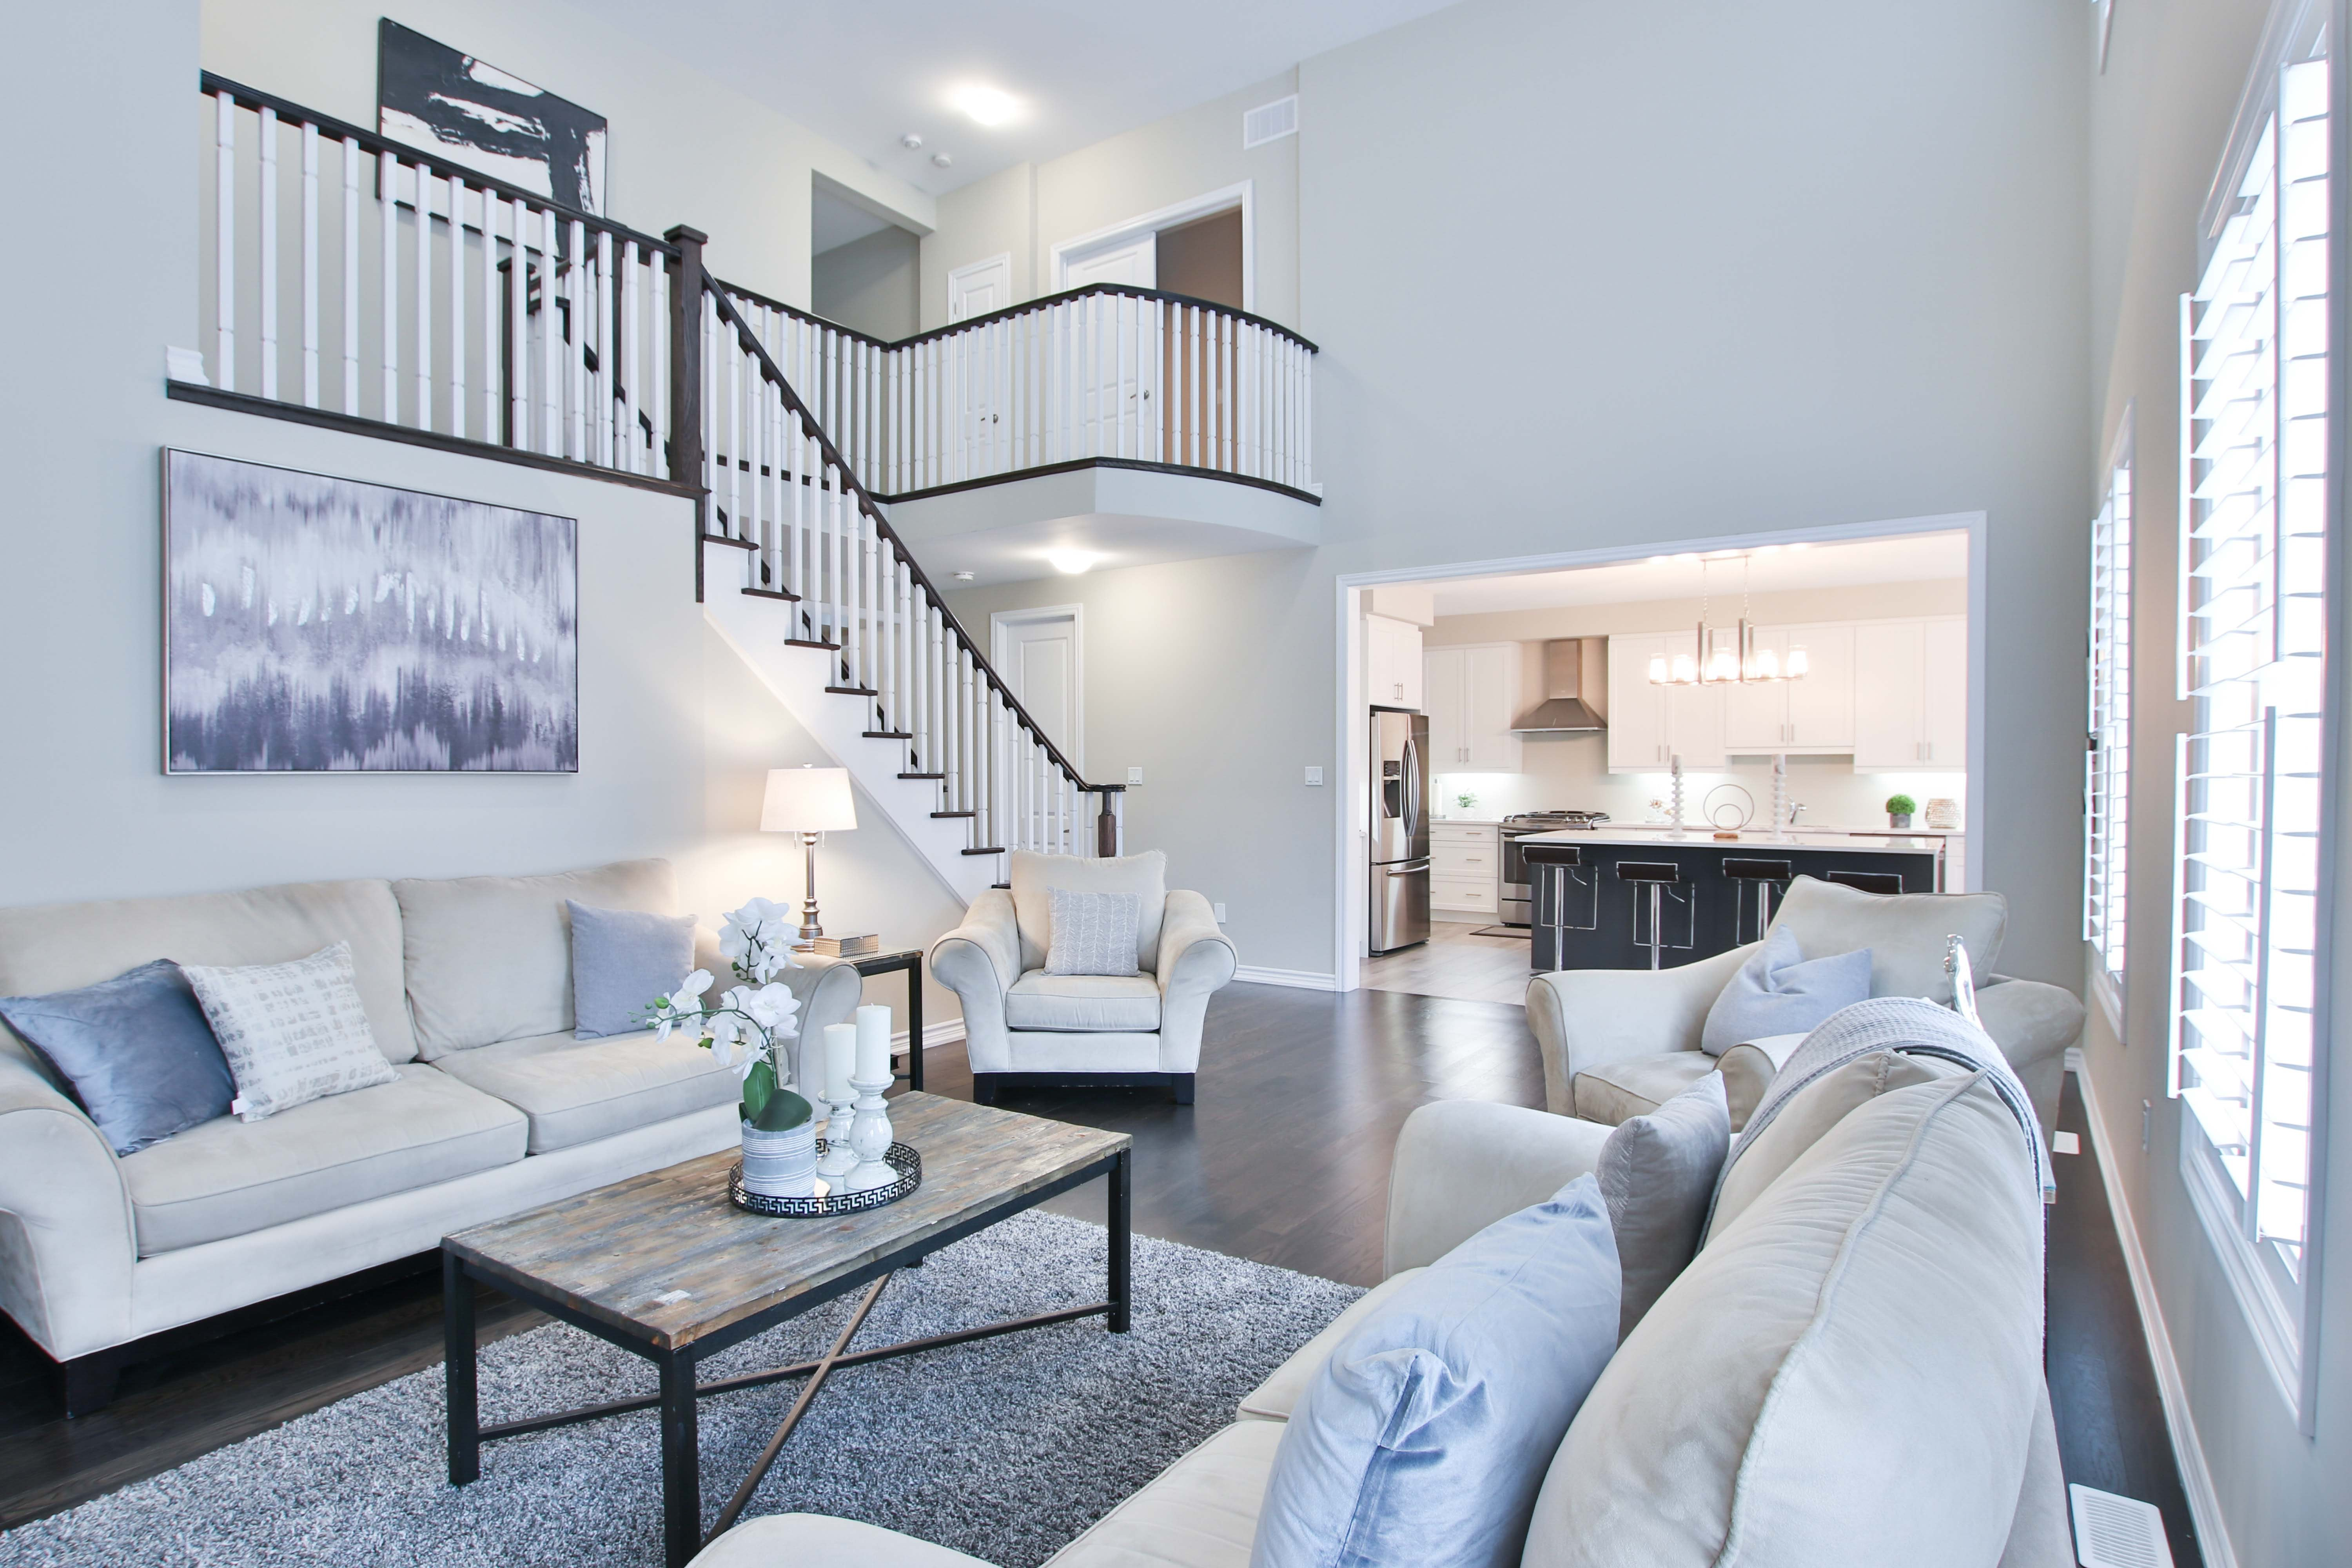 Standard House Cleaning Services in Montreal